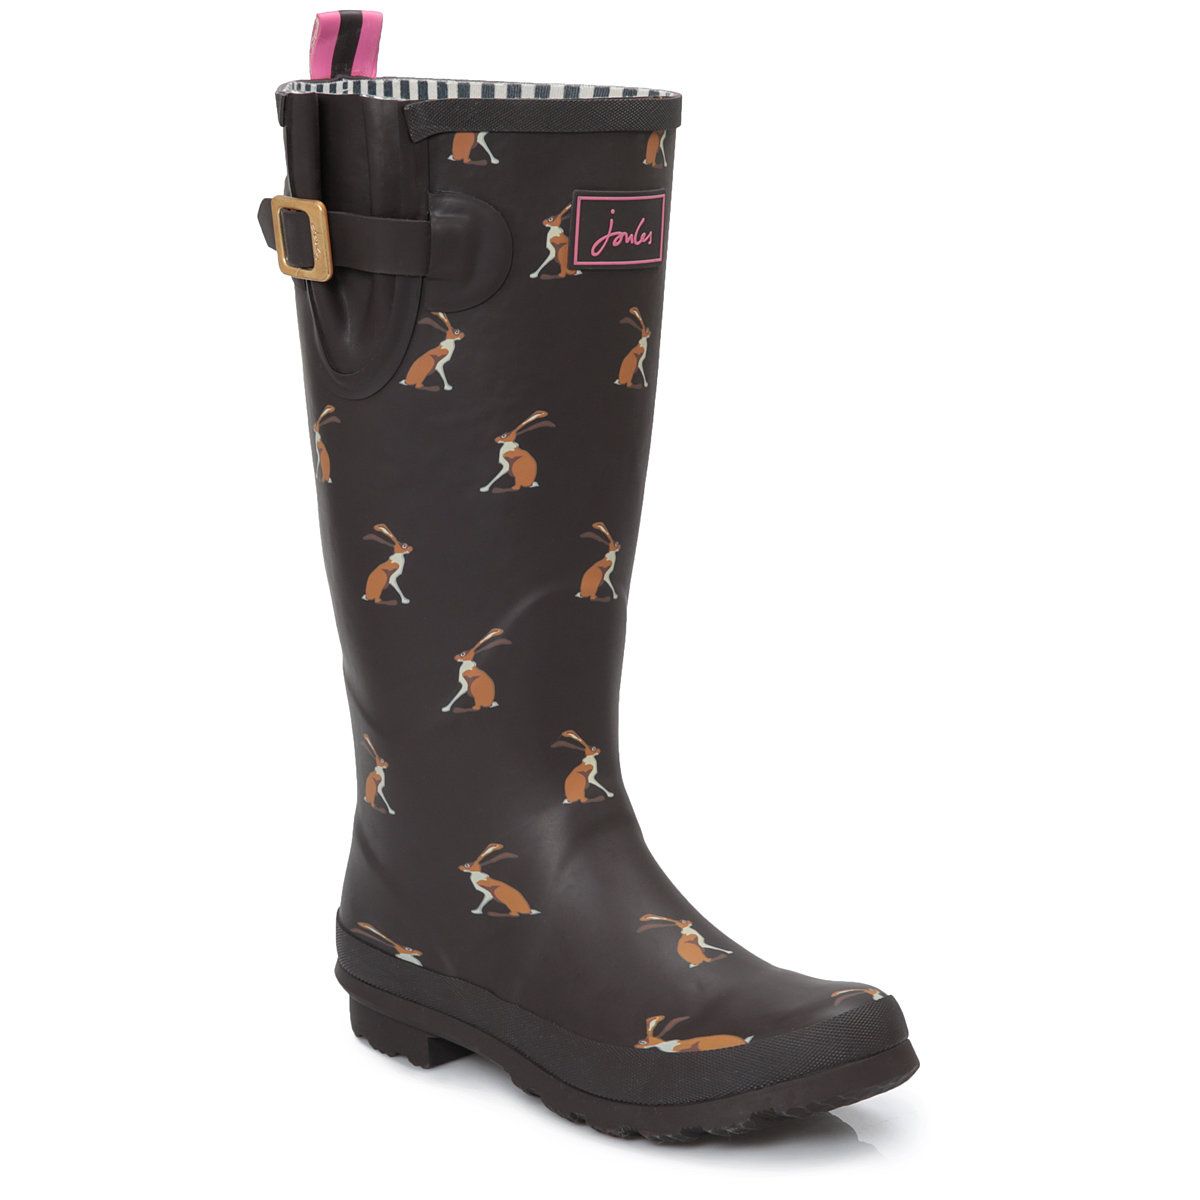 Ladies' Casual & Going Out Boots Come rain or shine, boots ensure a finishing touch that will elevate just about any outfit. From trusty everyday ankle boots to towering high heel shoe boots, our women's boots collection features a range of designs to suit all styles and occasions.